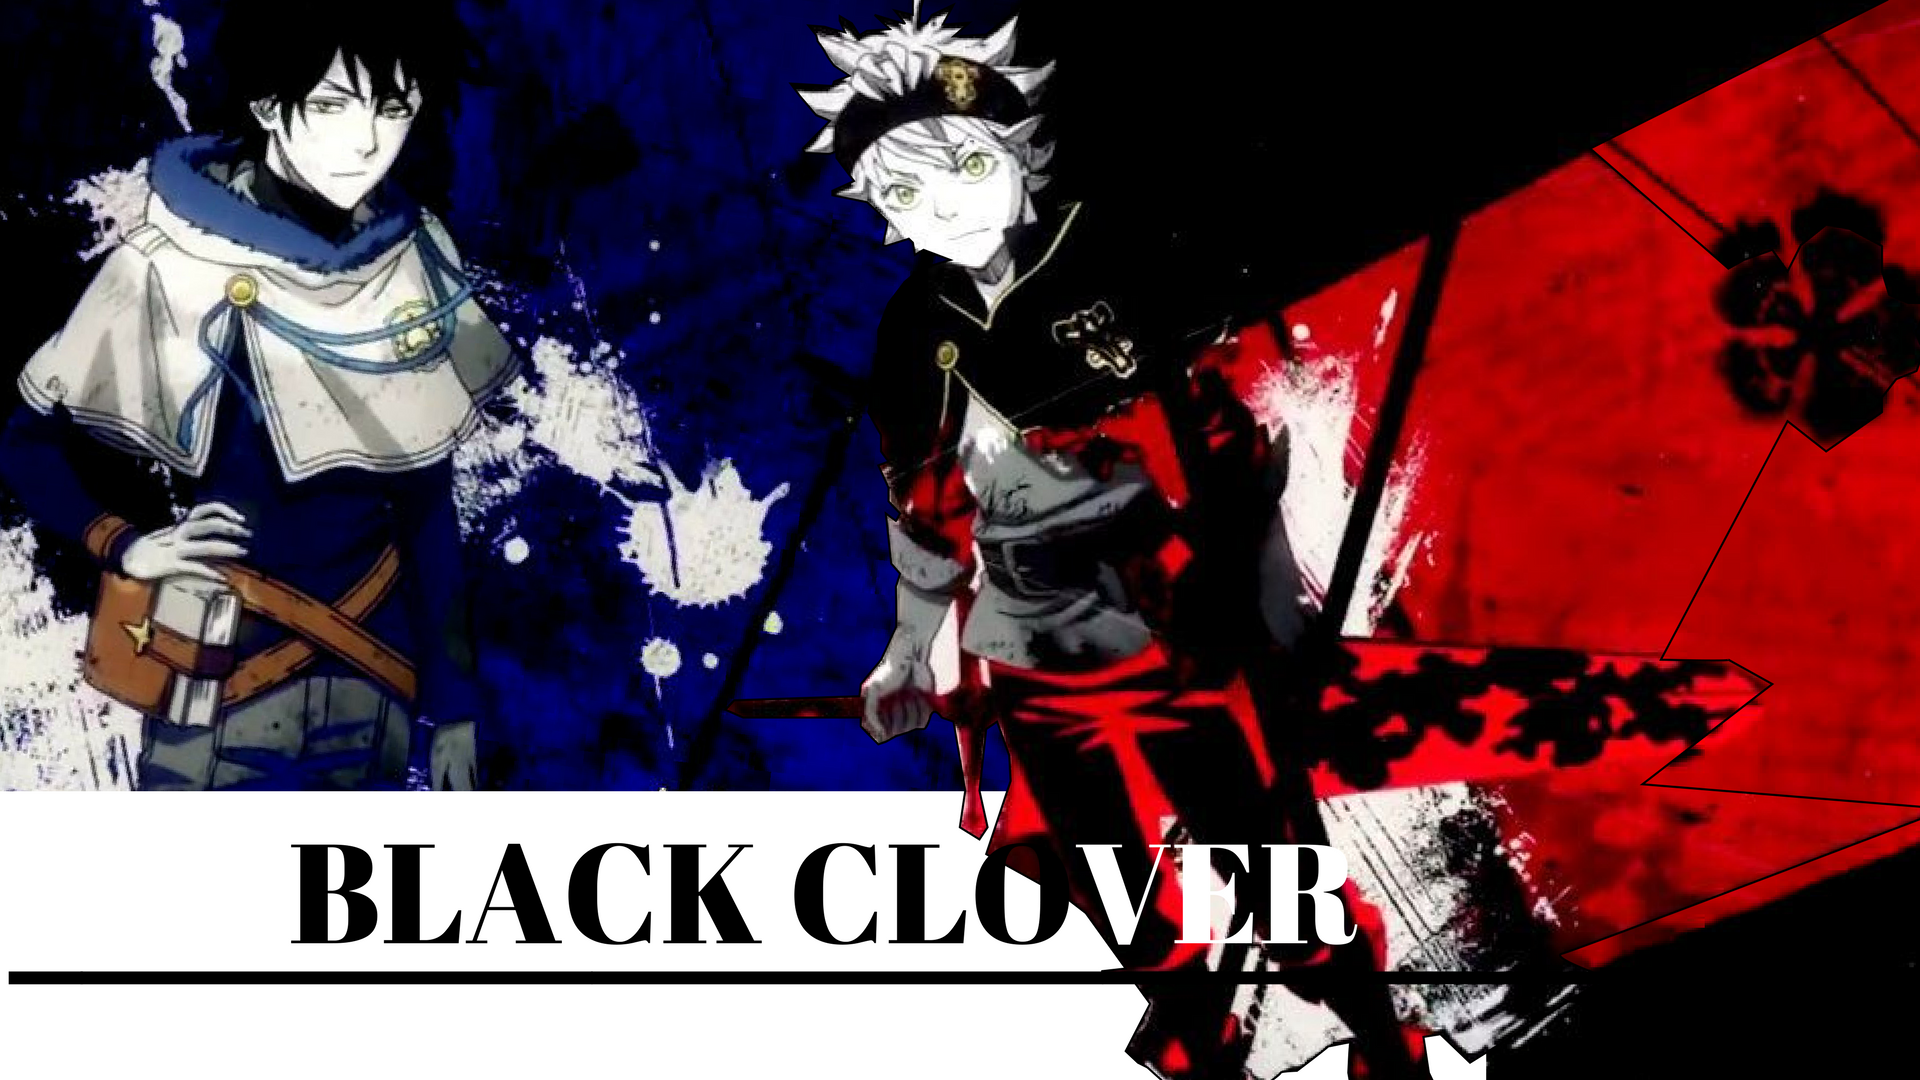 Black Clover Wallpaper 4k Posted By Ethan Anderson